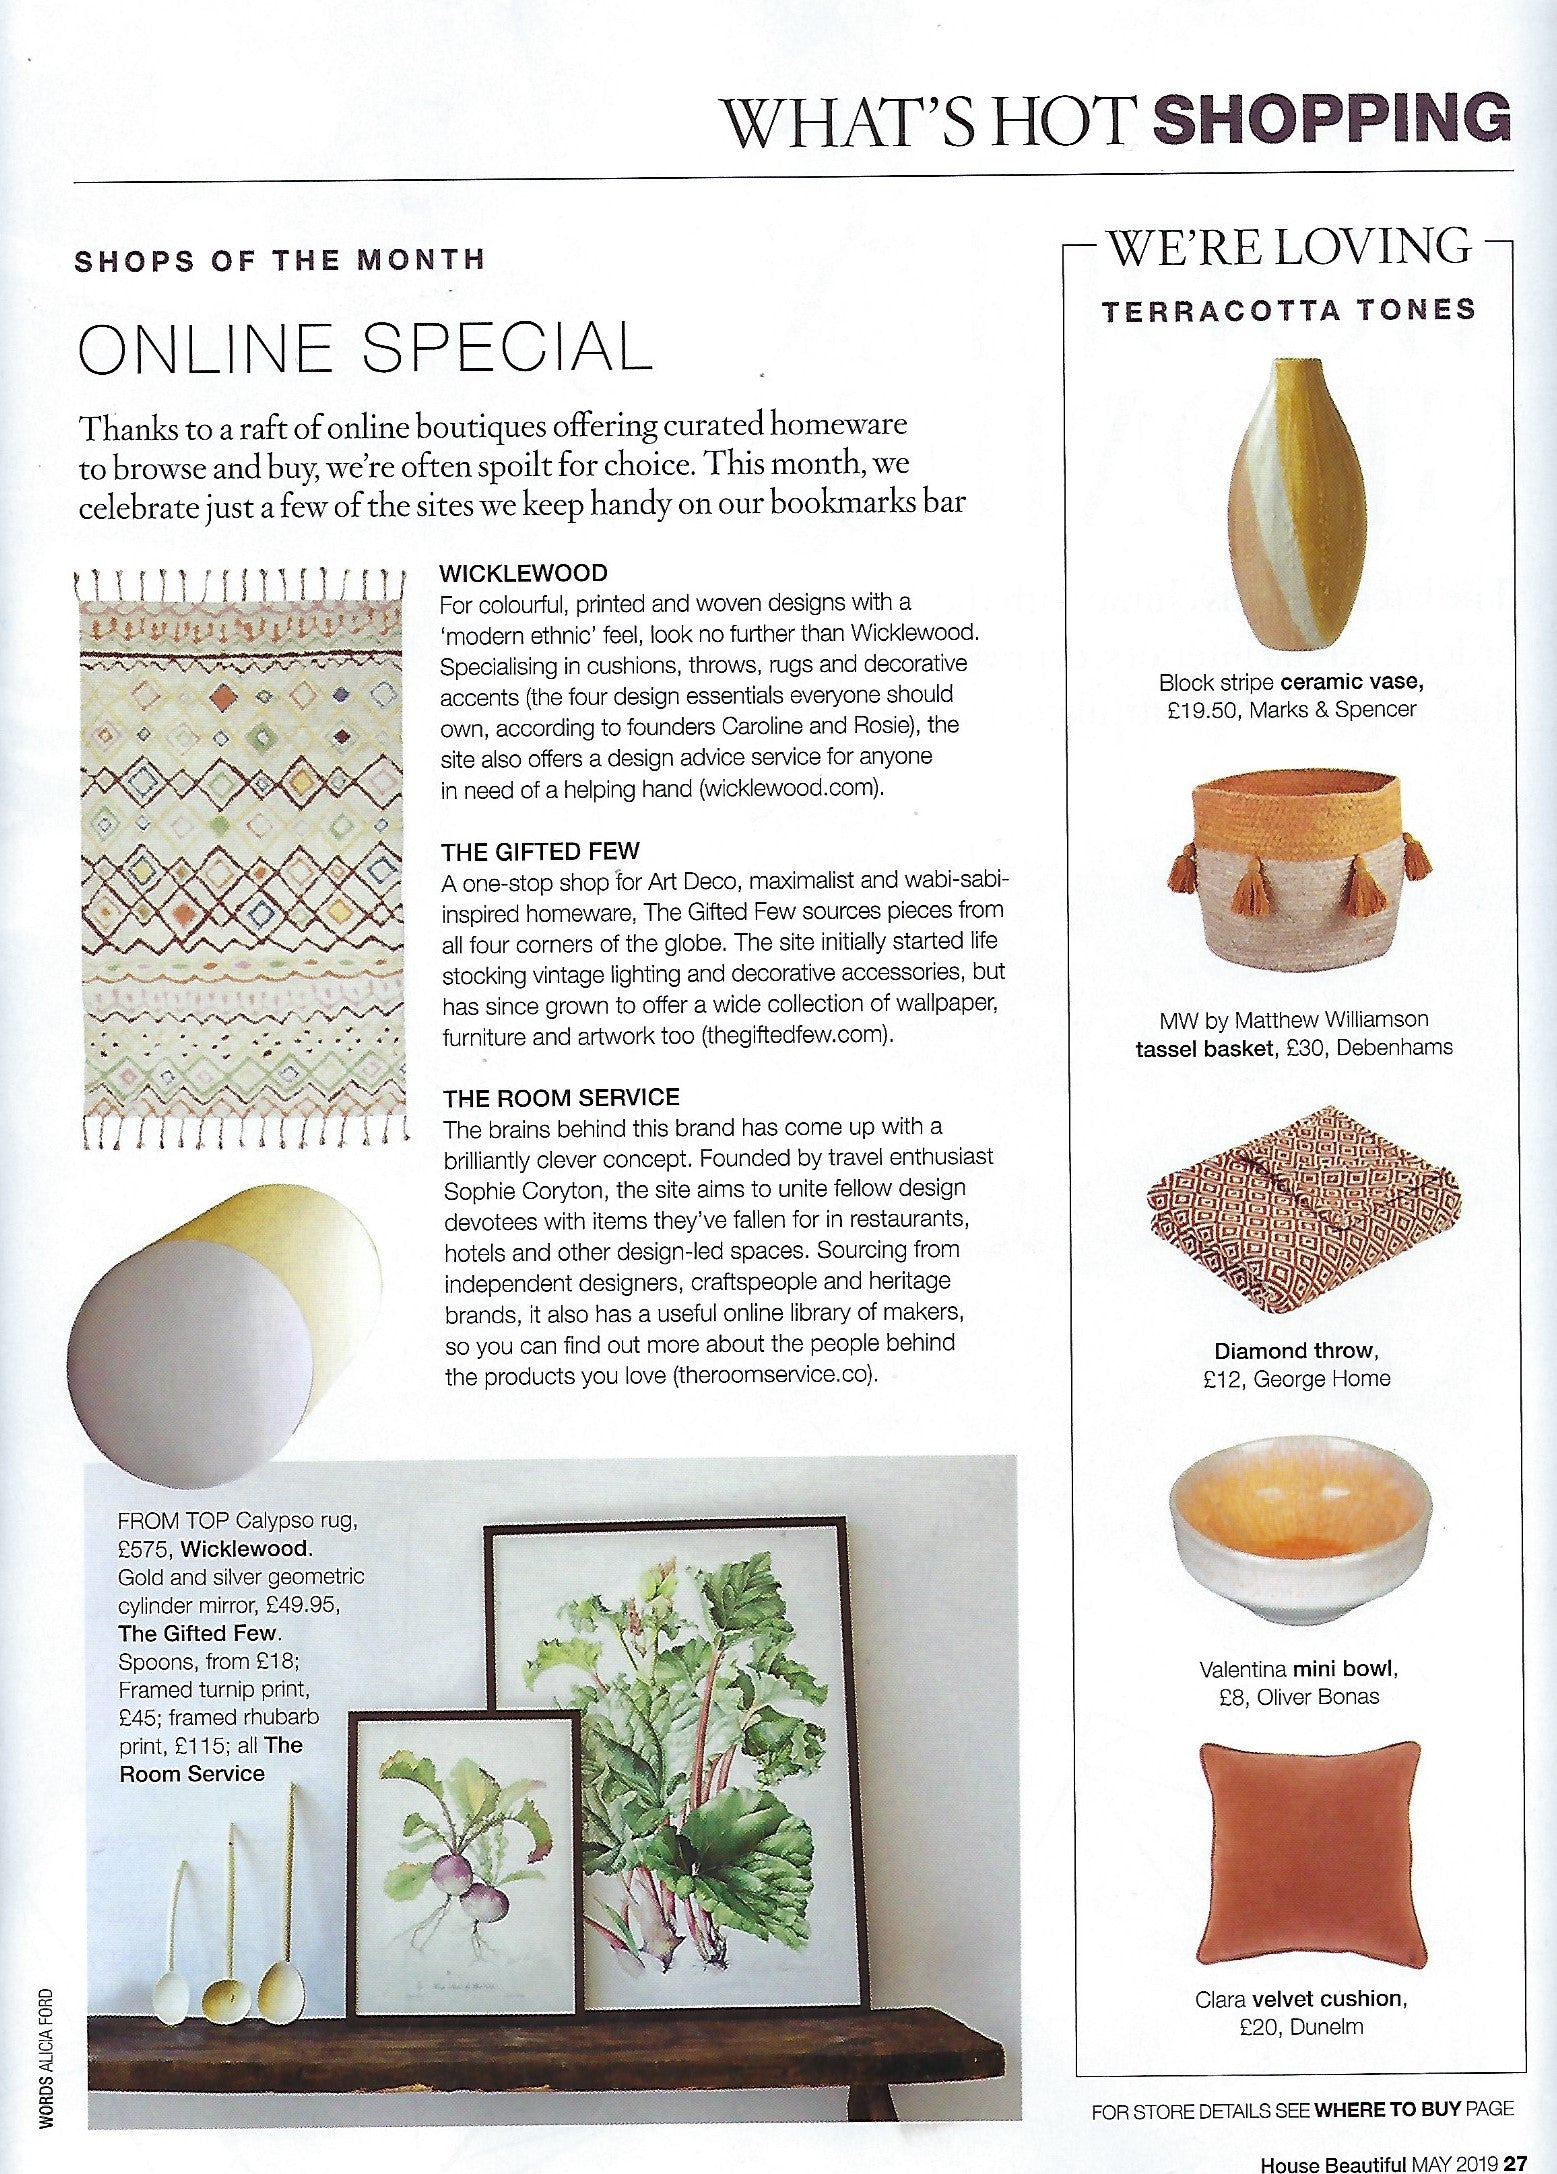 Wicklewood's Calypso Cushion features in House Beautiful's online special features in May 2019